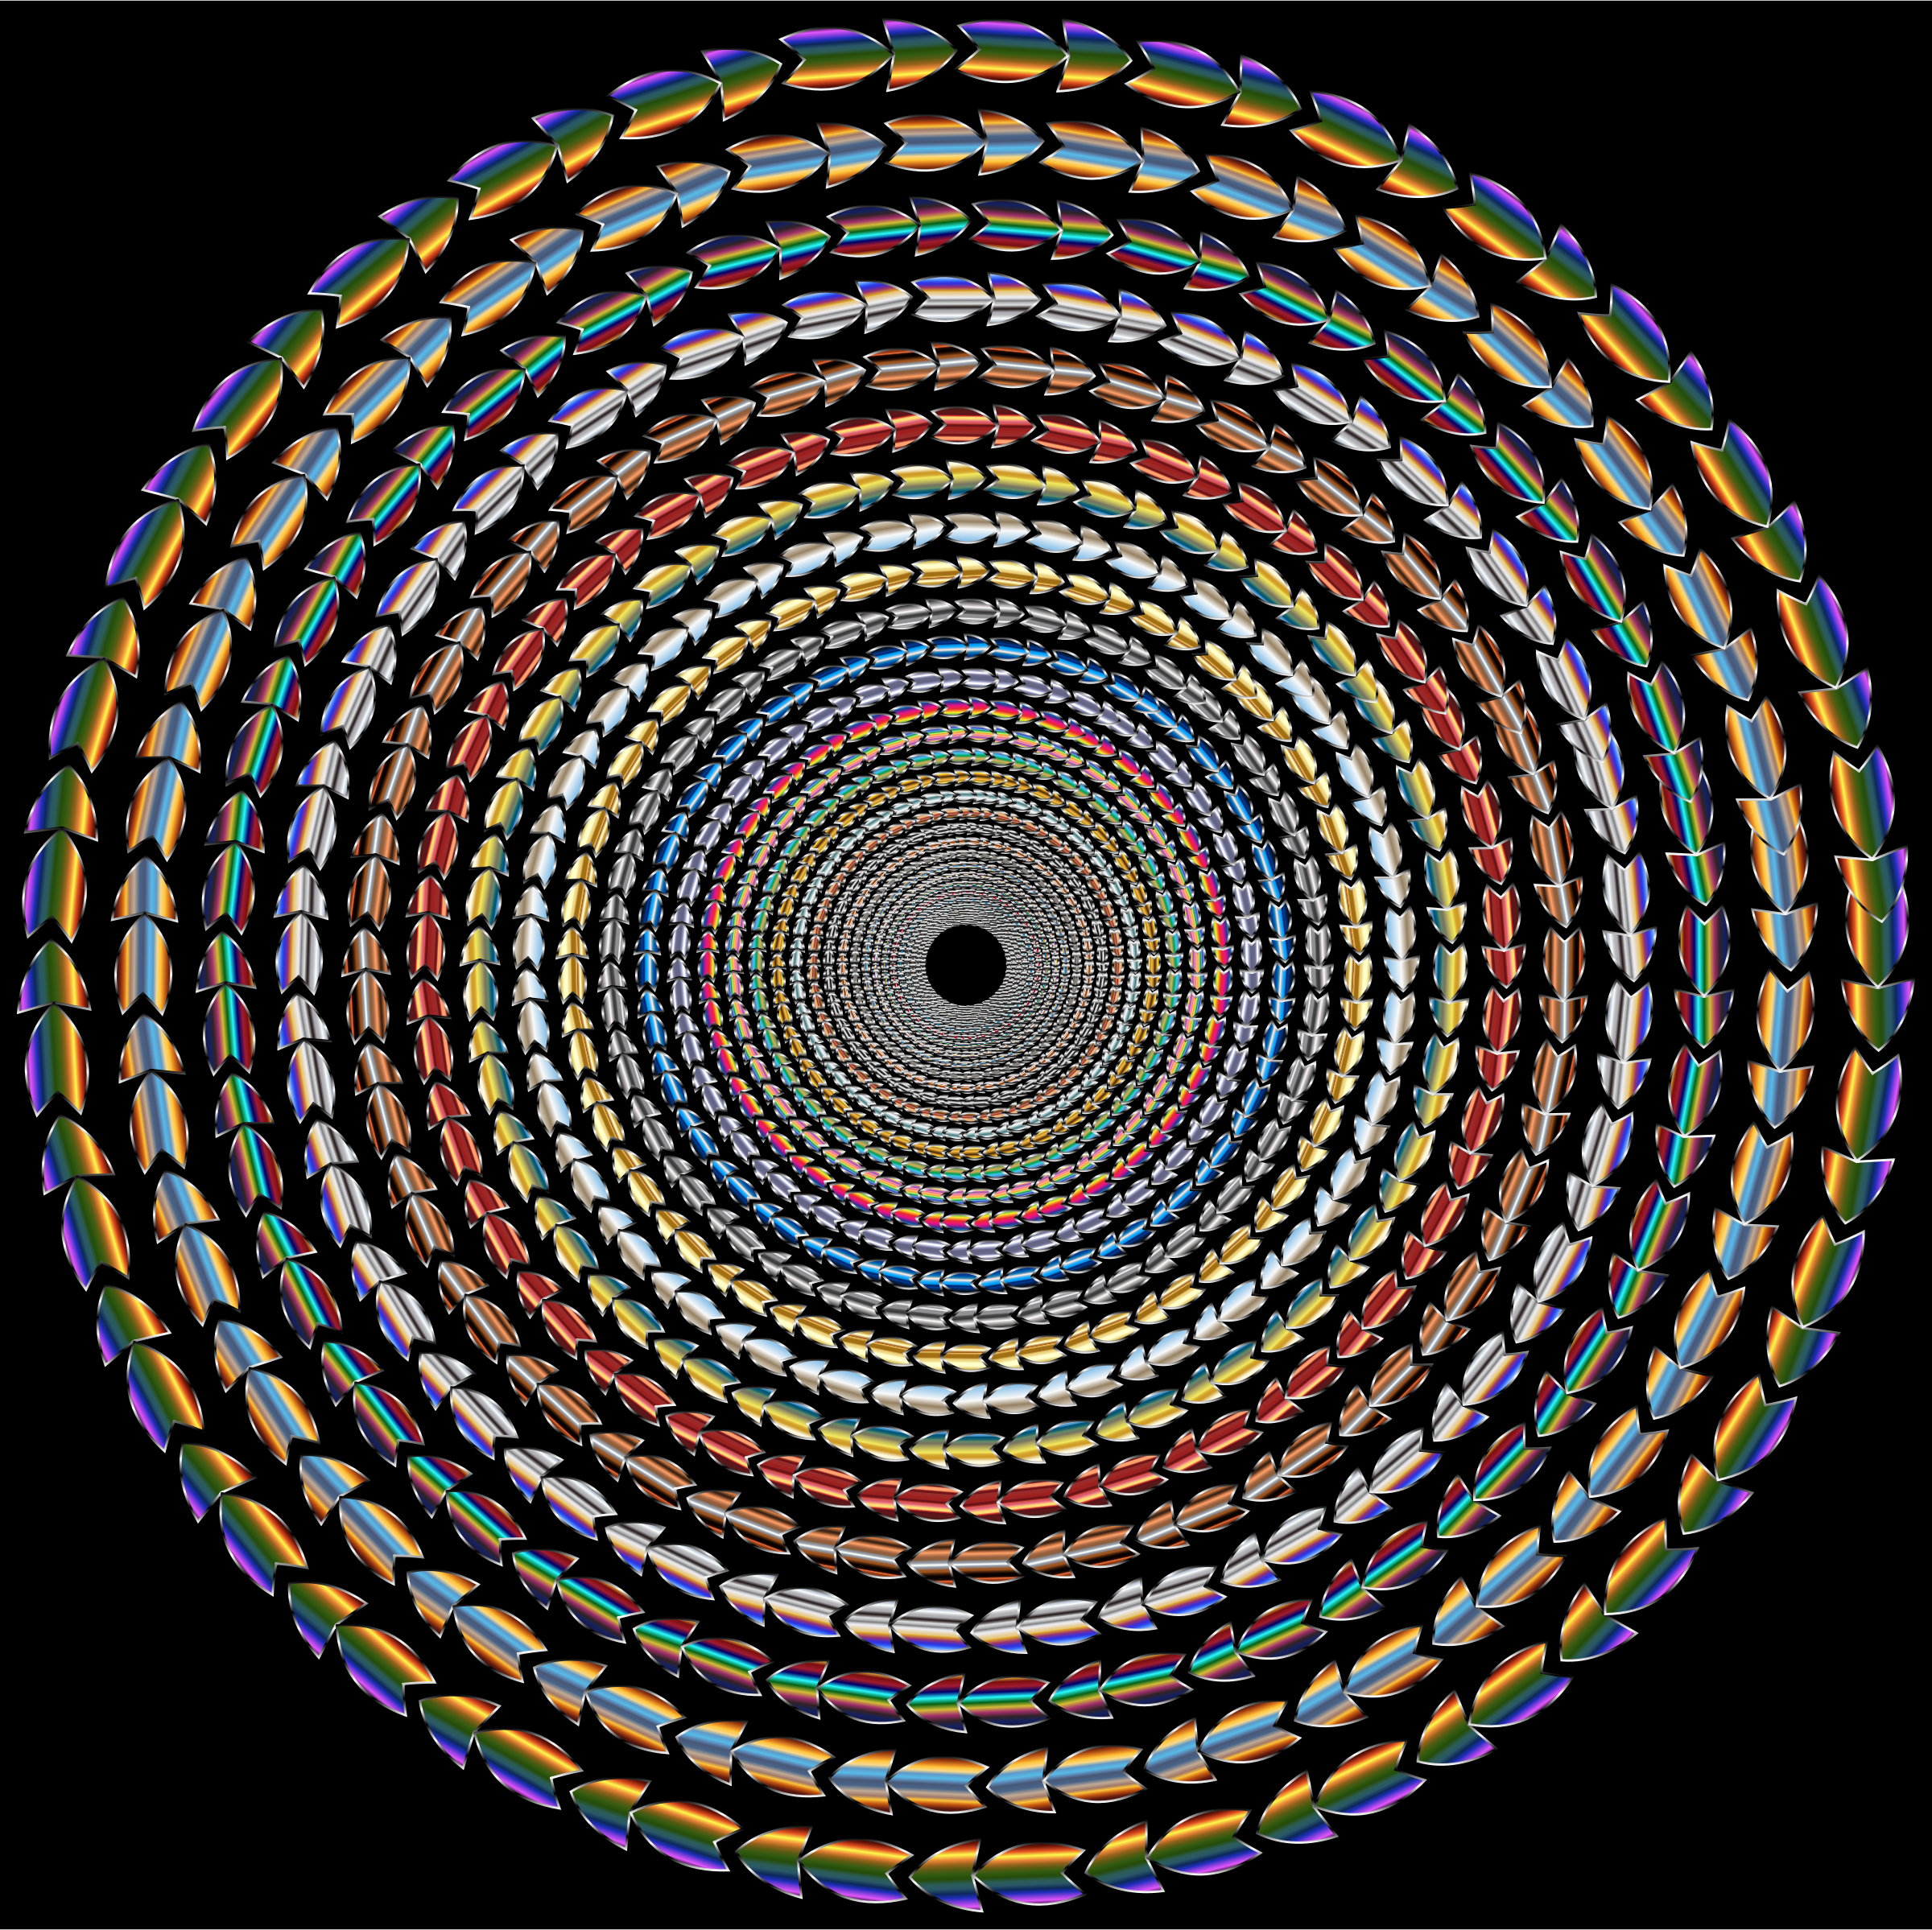 Polychromatic Colorful Direction Circle Vortex Variation 3 by GDJ